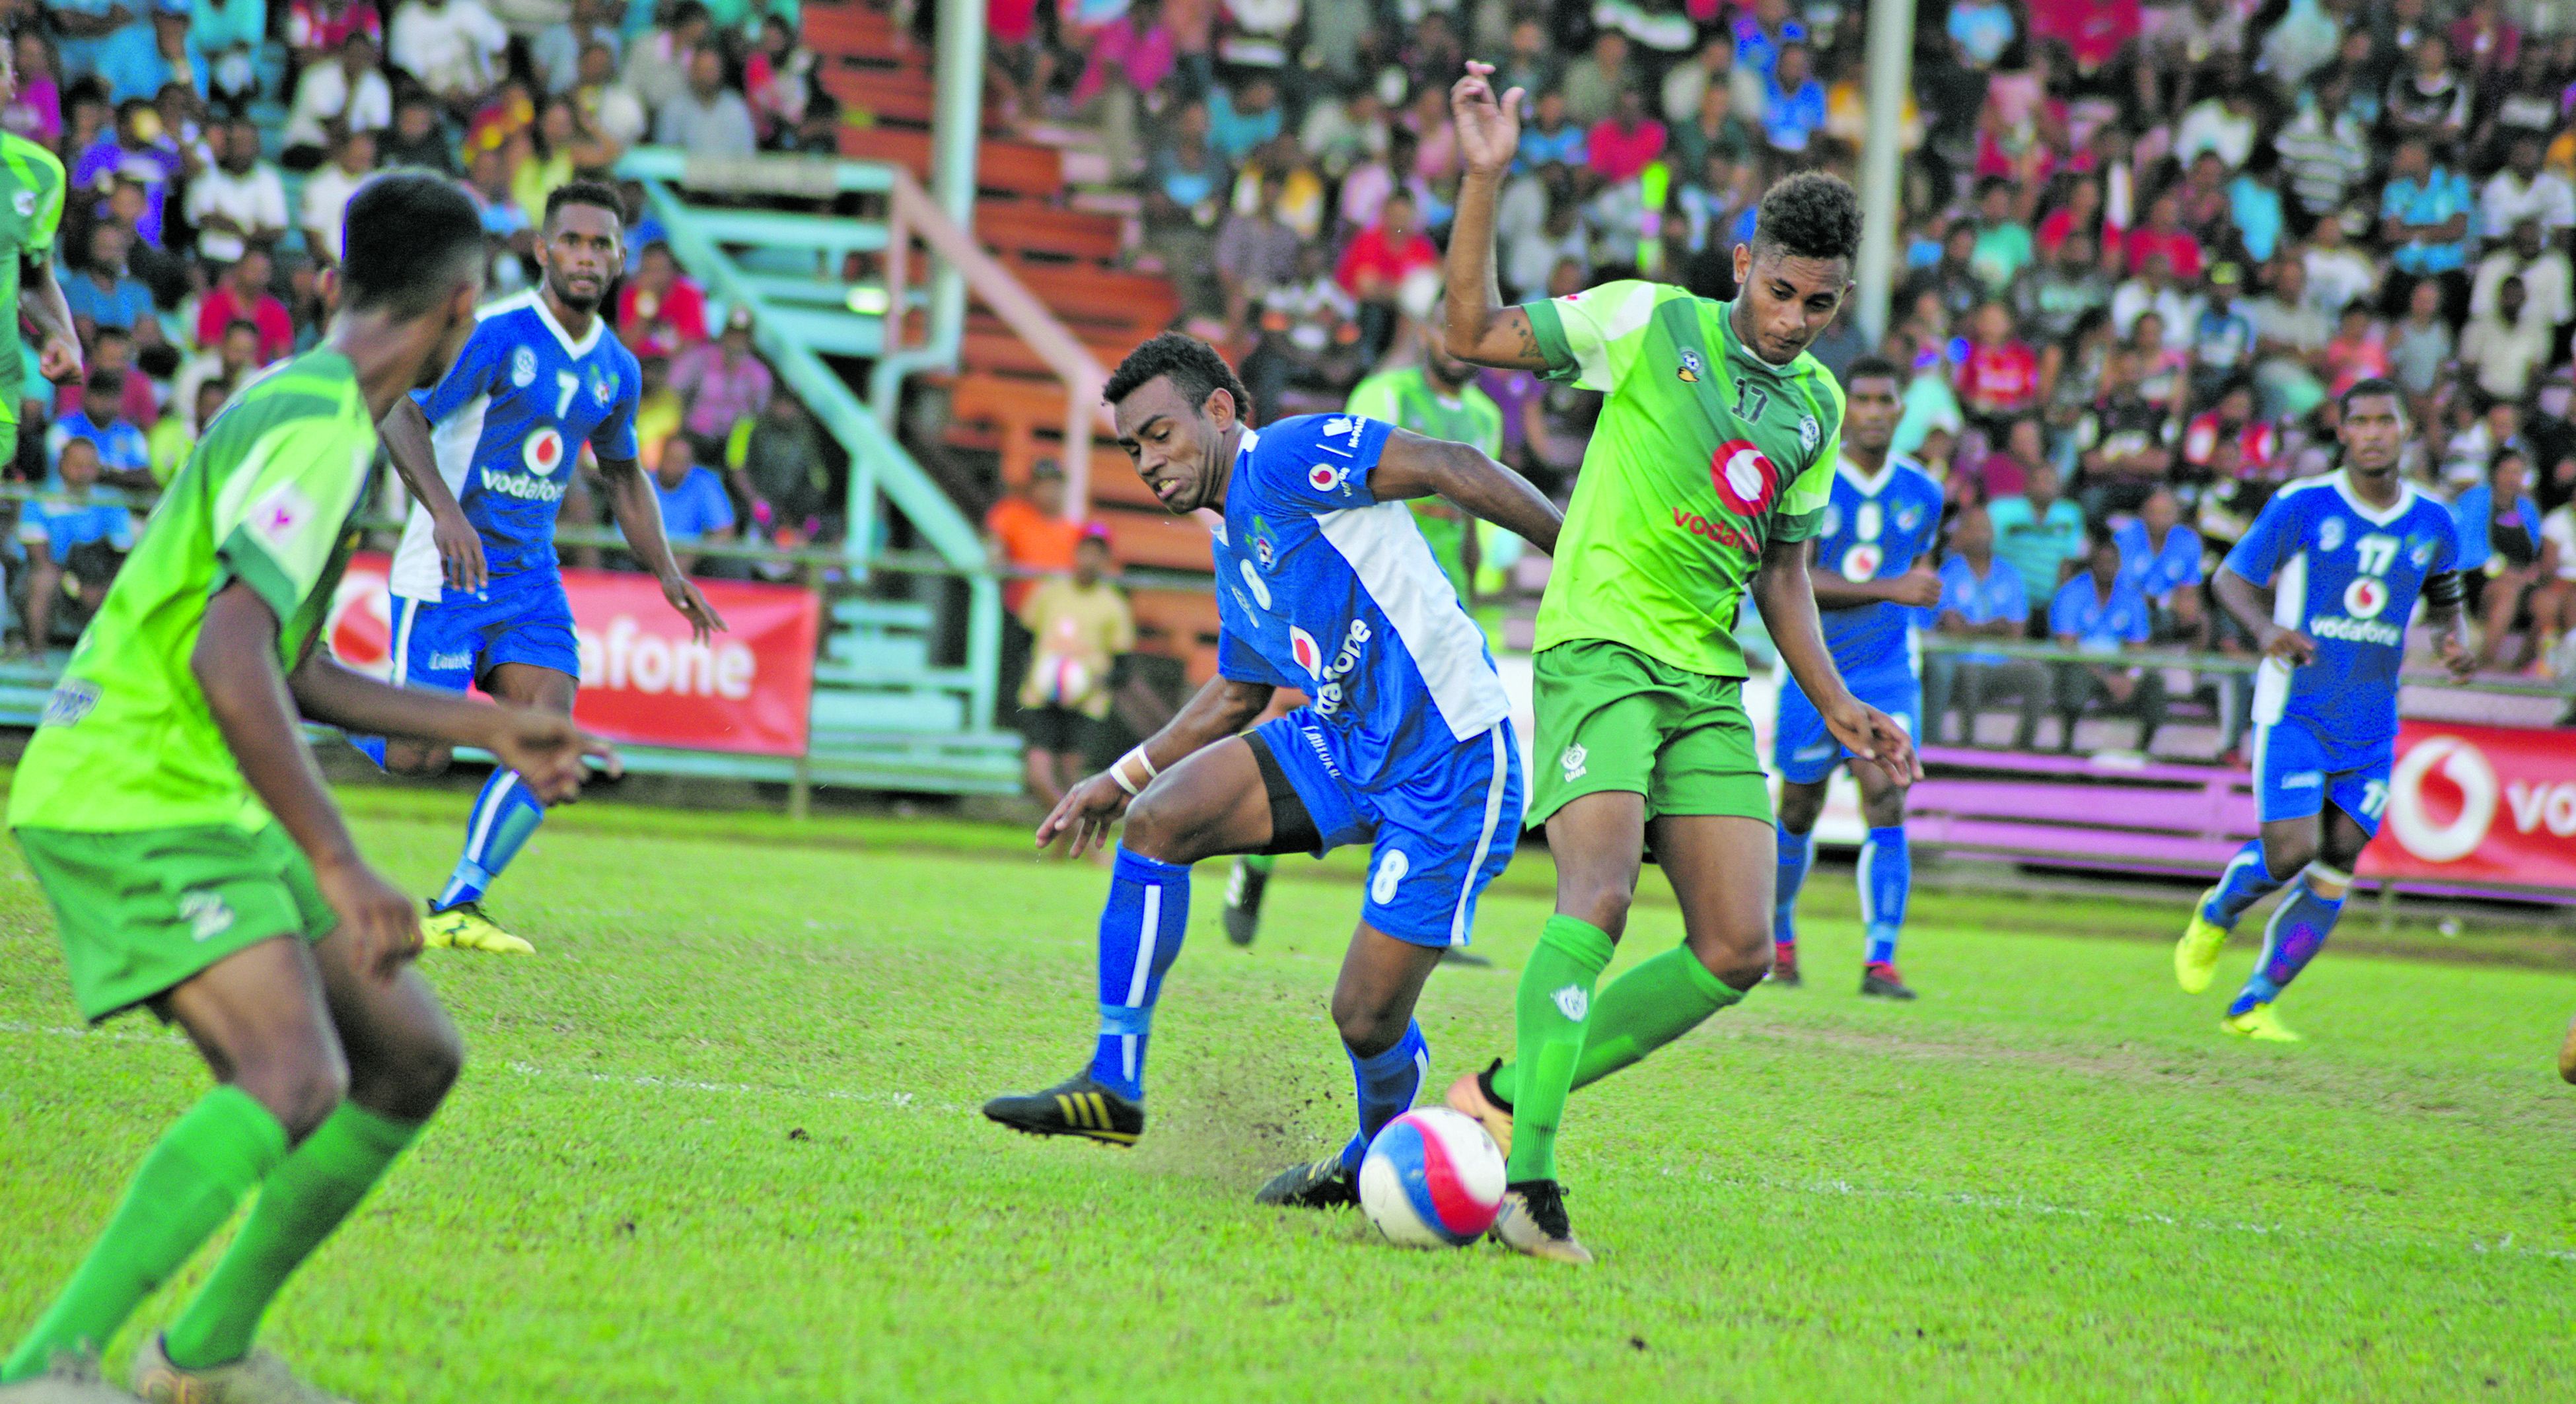 Kavaia Rawaqa of Lautoka and Parick Joseph of Lautoka (right) battle for possession during the Vodafone Fiji FACT tournament on May 26, 2018. Photo: Ronald Kumar.